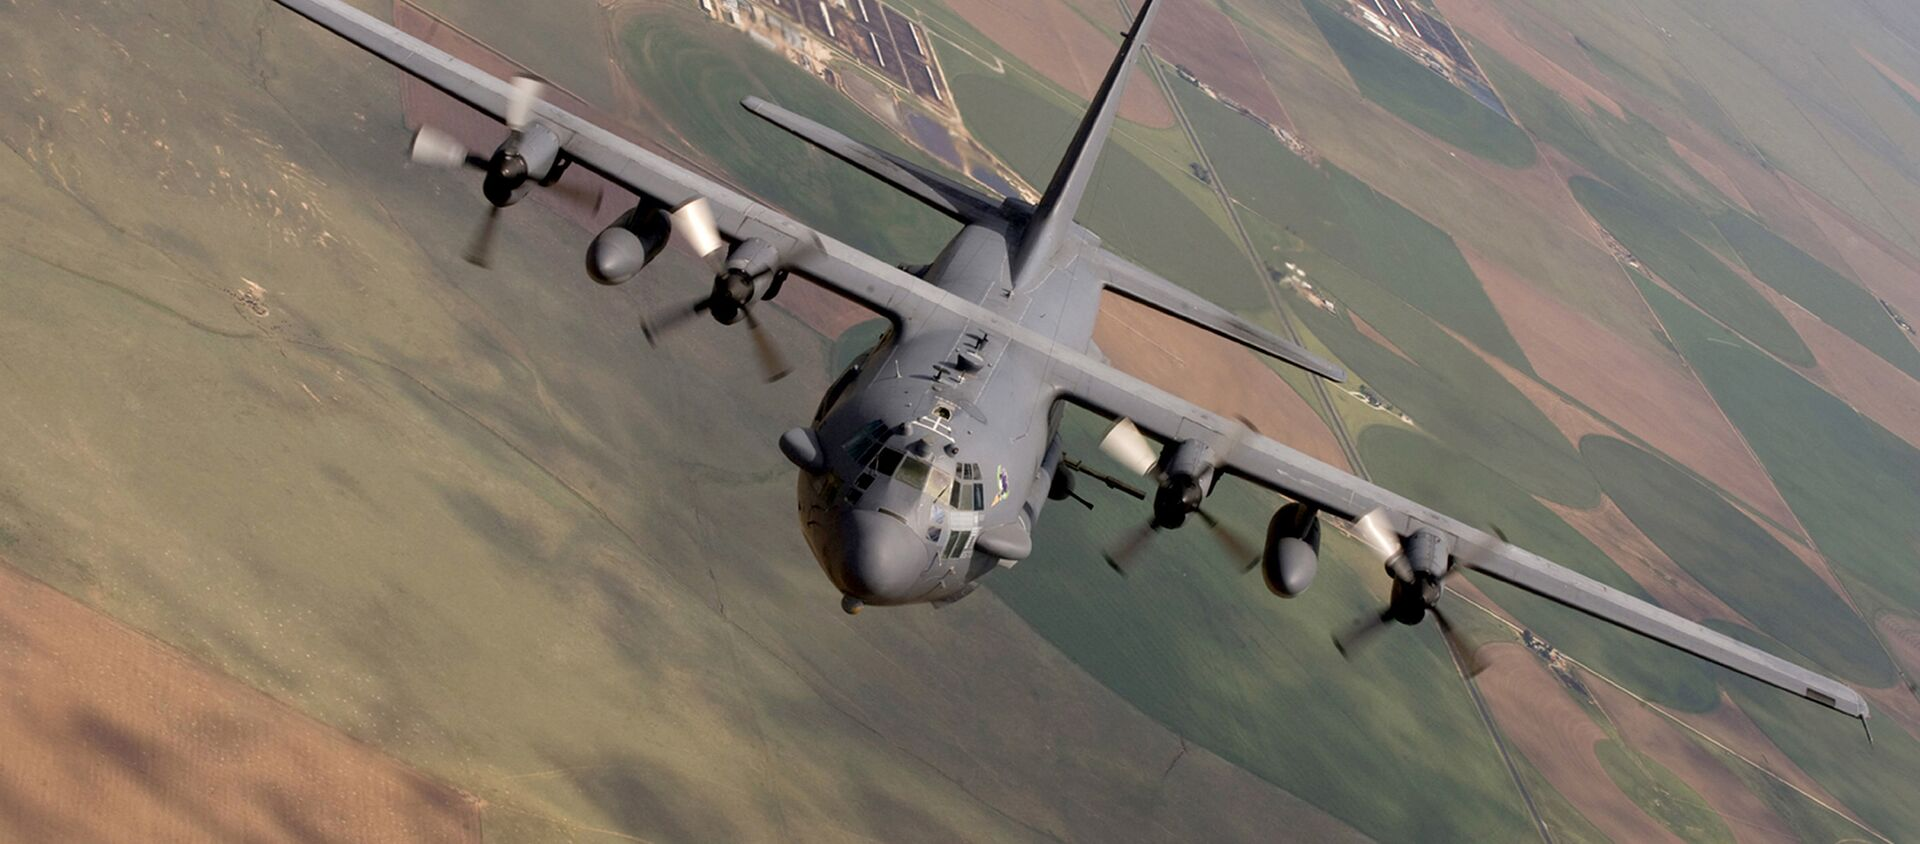 AC-130 Spectre from the 16th Special Operations Squadron flying a training mission at Cannon Air Force Base, N. M. Inside the intensive care unit of the Doctors Without Borders hospital in Northern Afghanistan in the early hours of Oct. 3, 2015 - Sputnik International, 1920, 07.08.2021